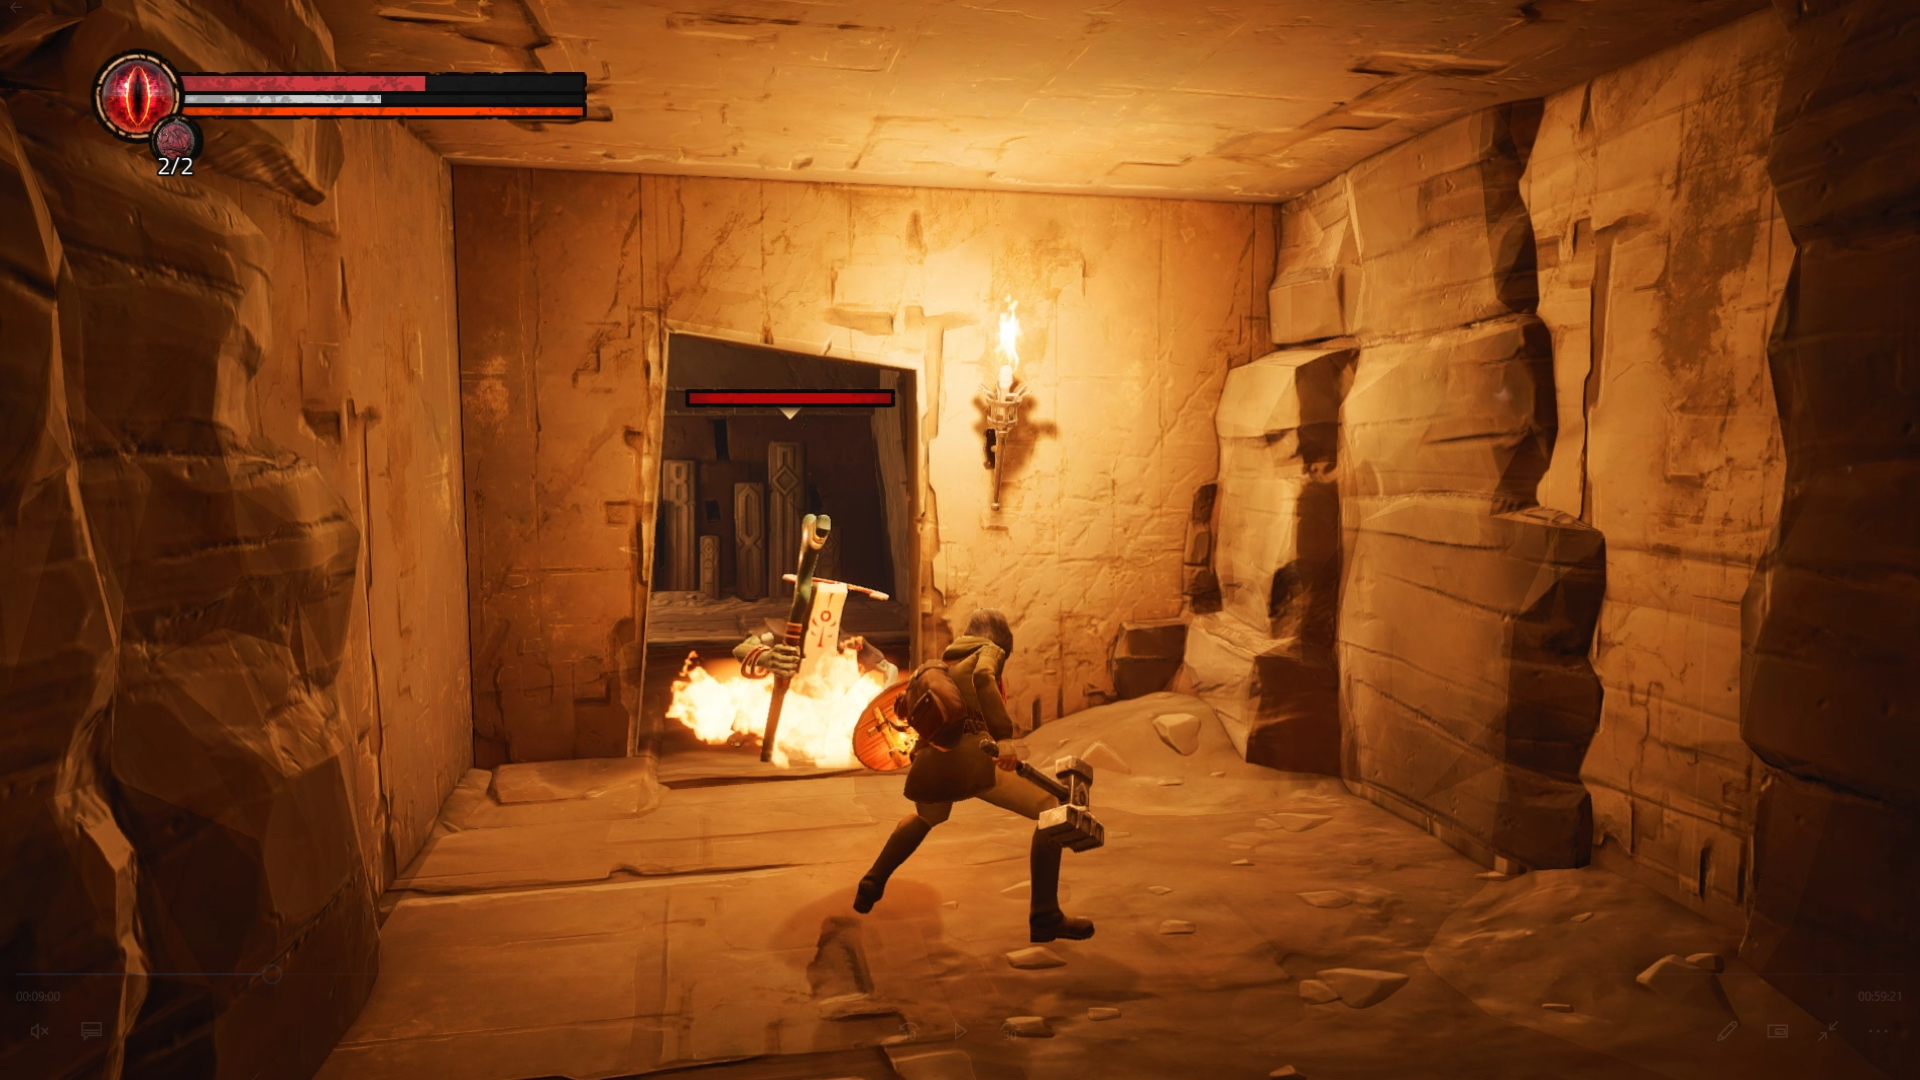 I fight a mage in a stone corridor dimly lit by the orange glow of a torch.